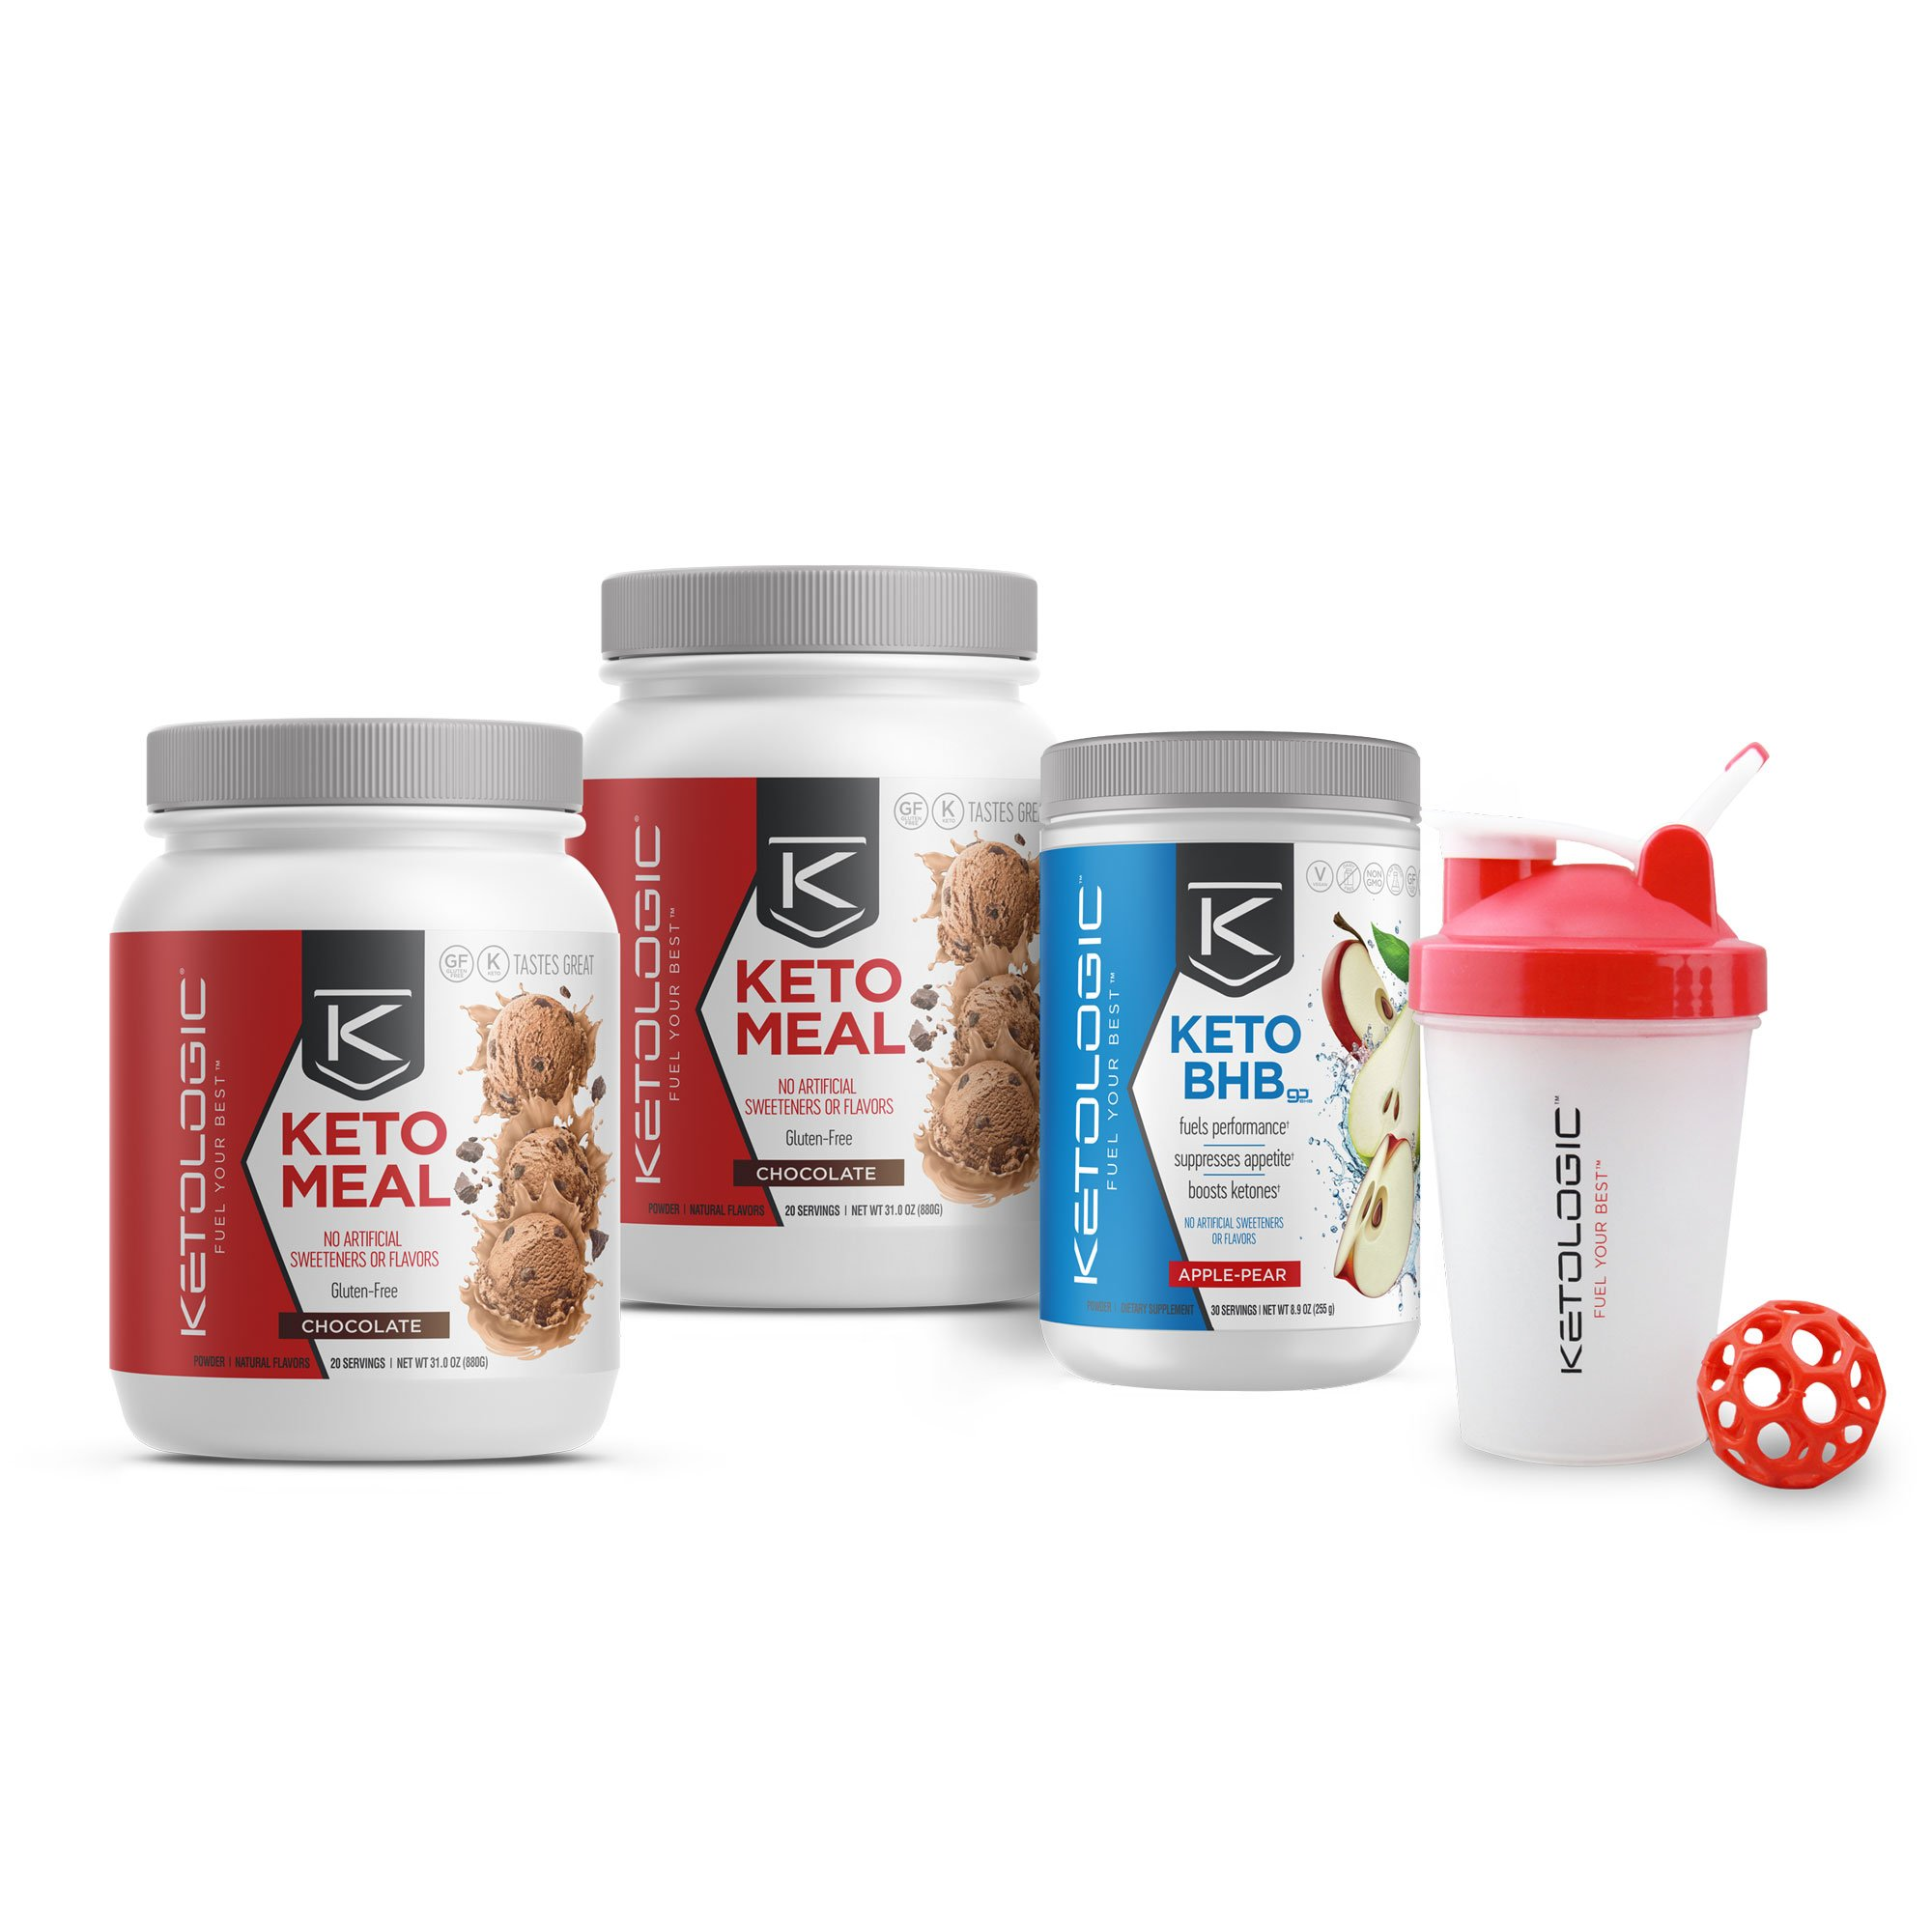 Keto-30-Bundle-NEW-9.18-CHOC-APEAR_2048x2048